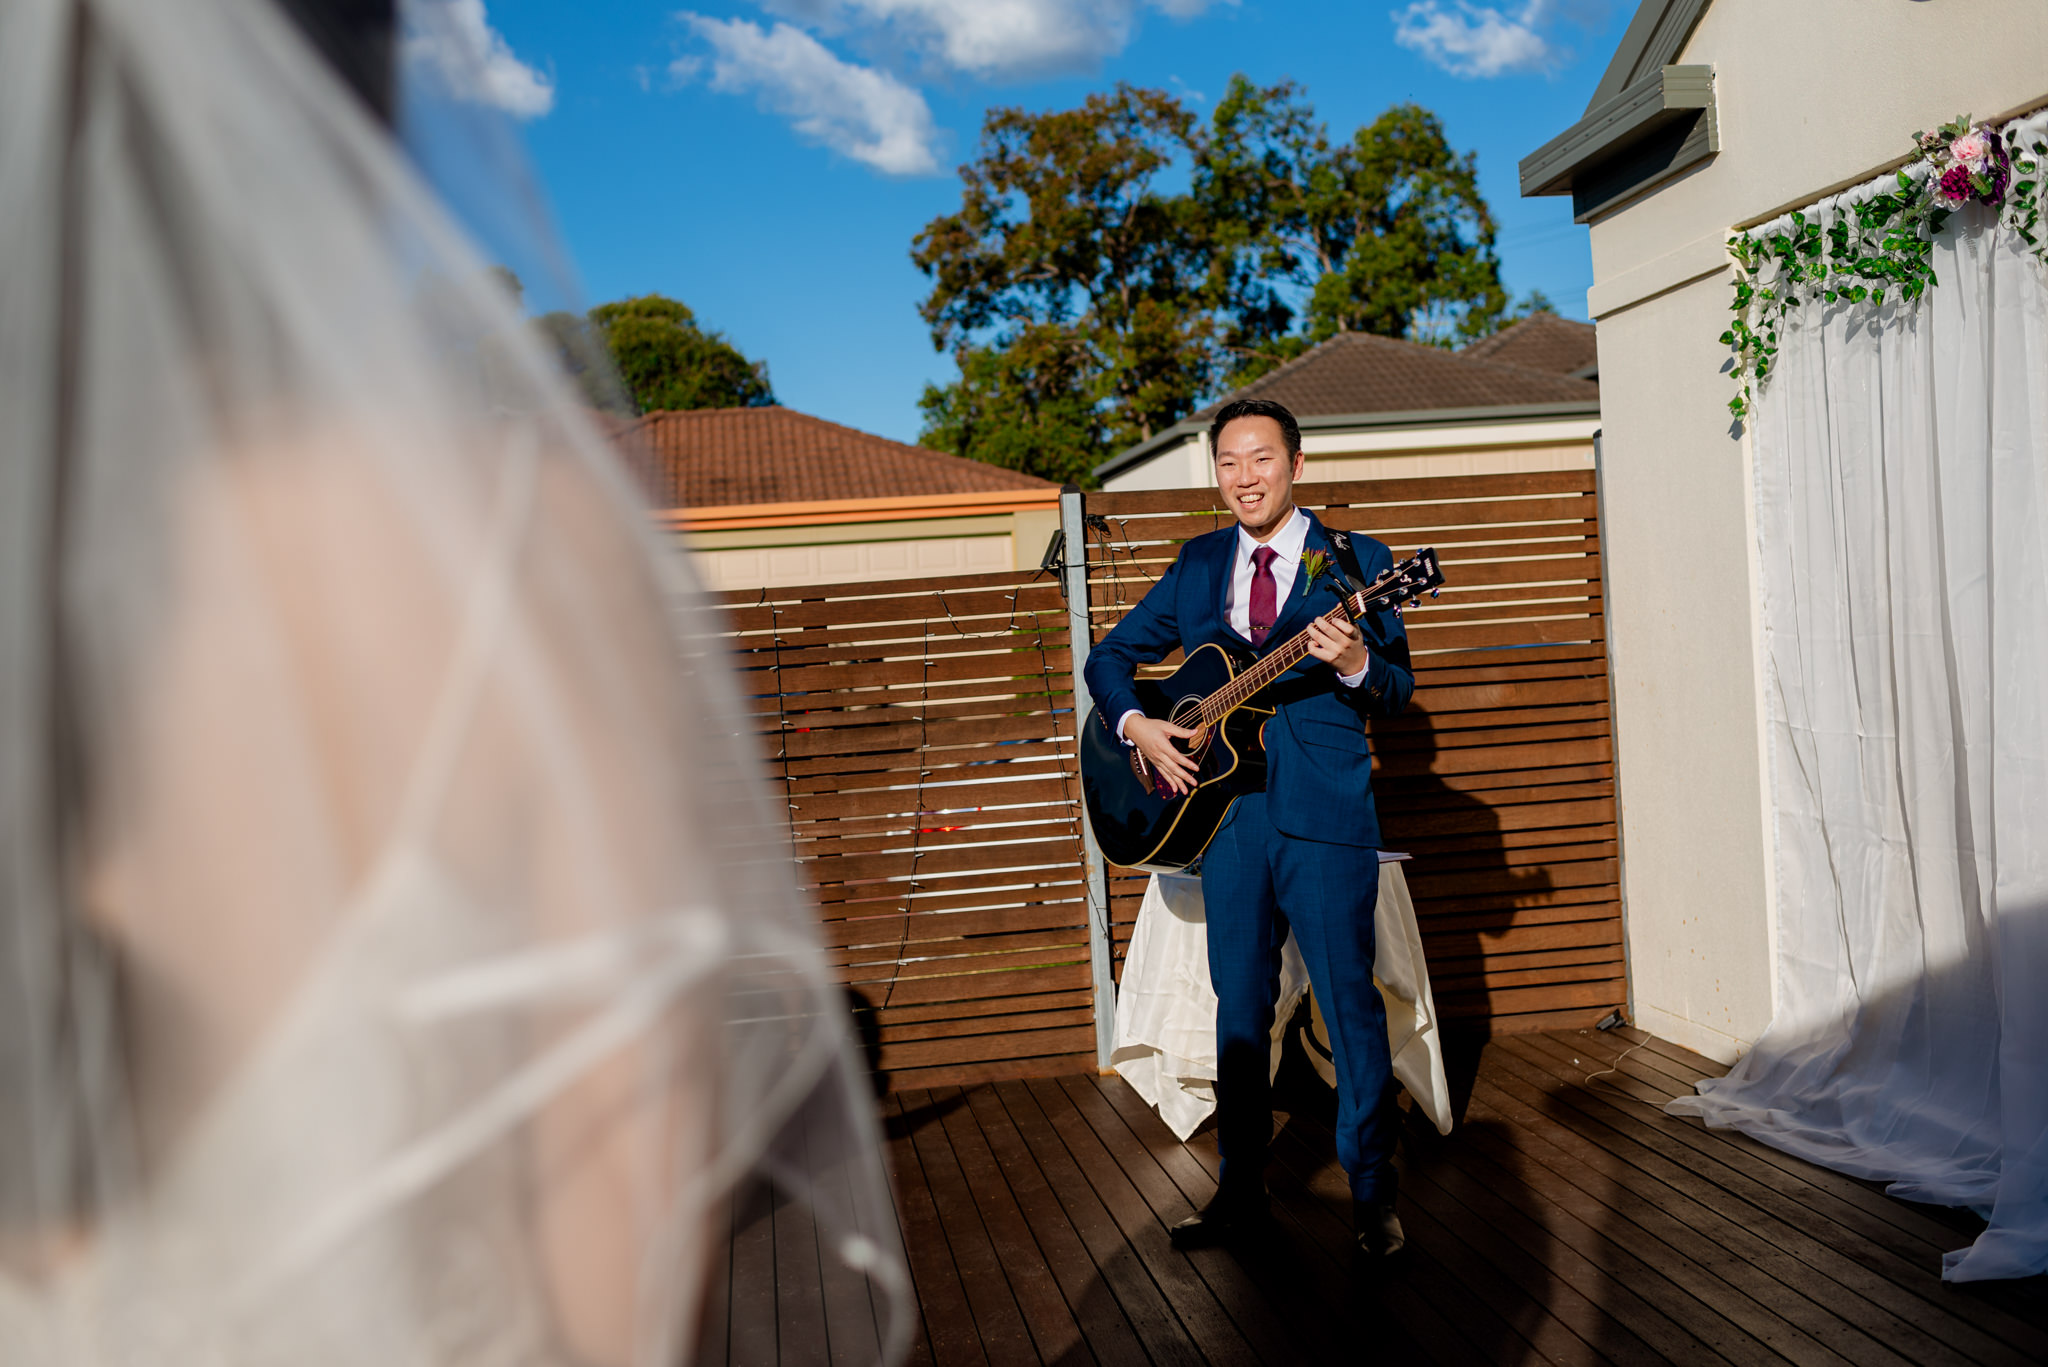 A groom plays guitar and sings on a wooden deck in front of a house